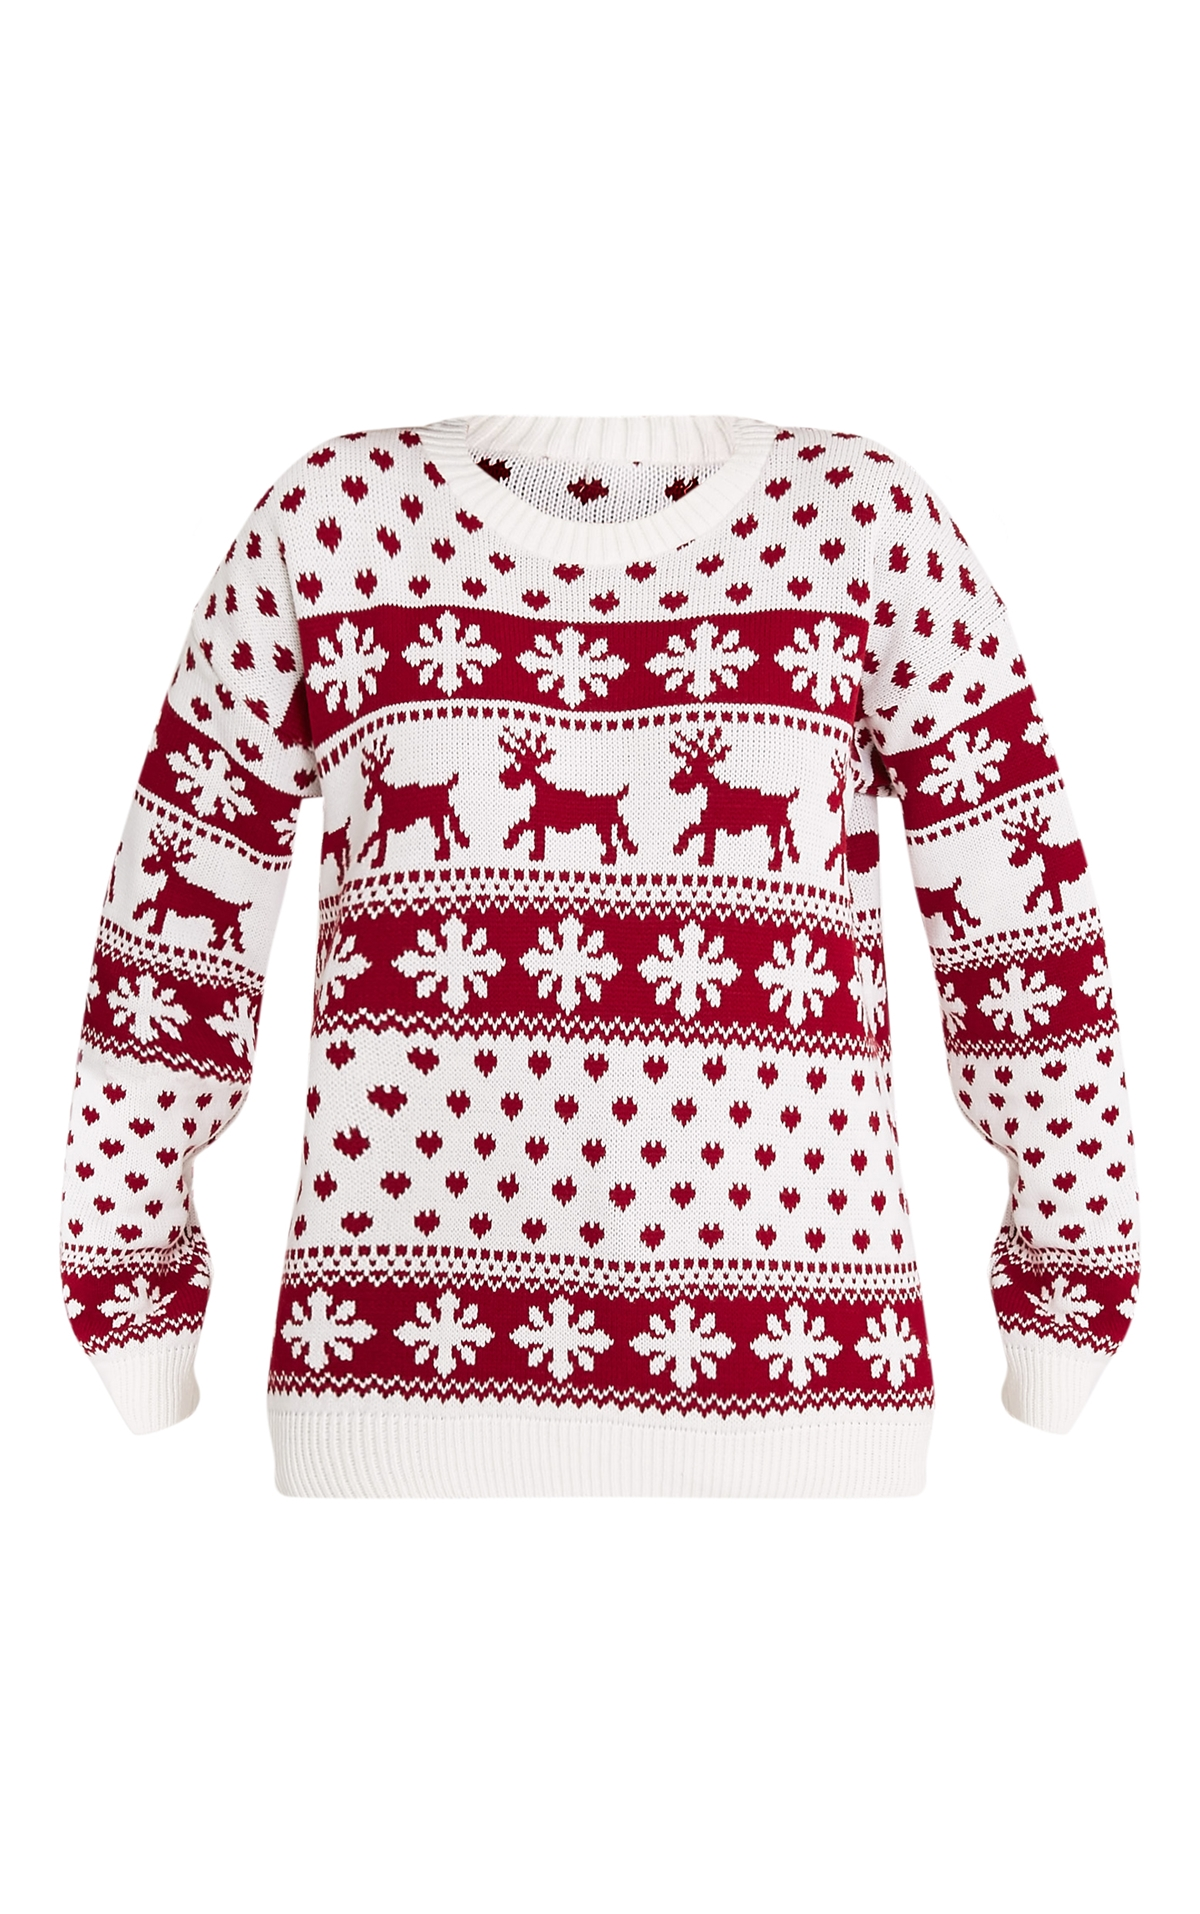 pll pretty little thing christmas jumper patterned red white